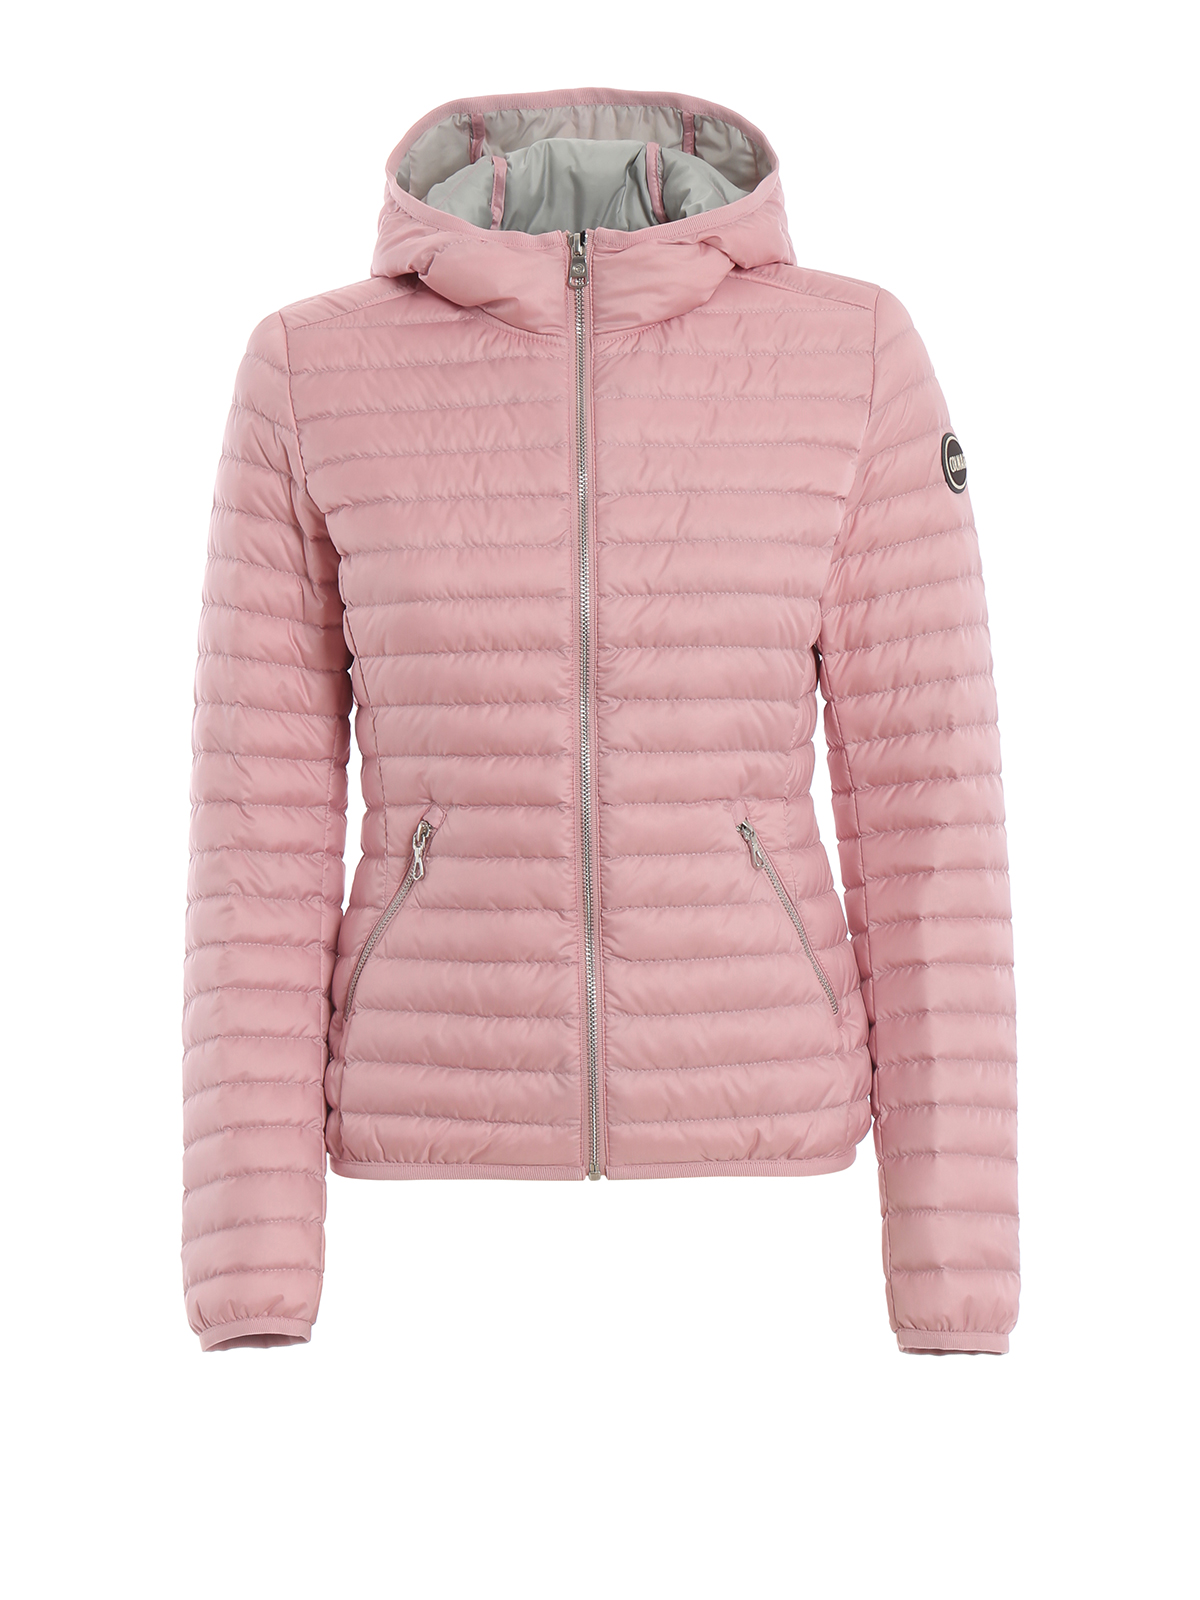 best loved f5f39 3d167 Colmar Originals - Piumino primaverile rosa con cappuccio ...